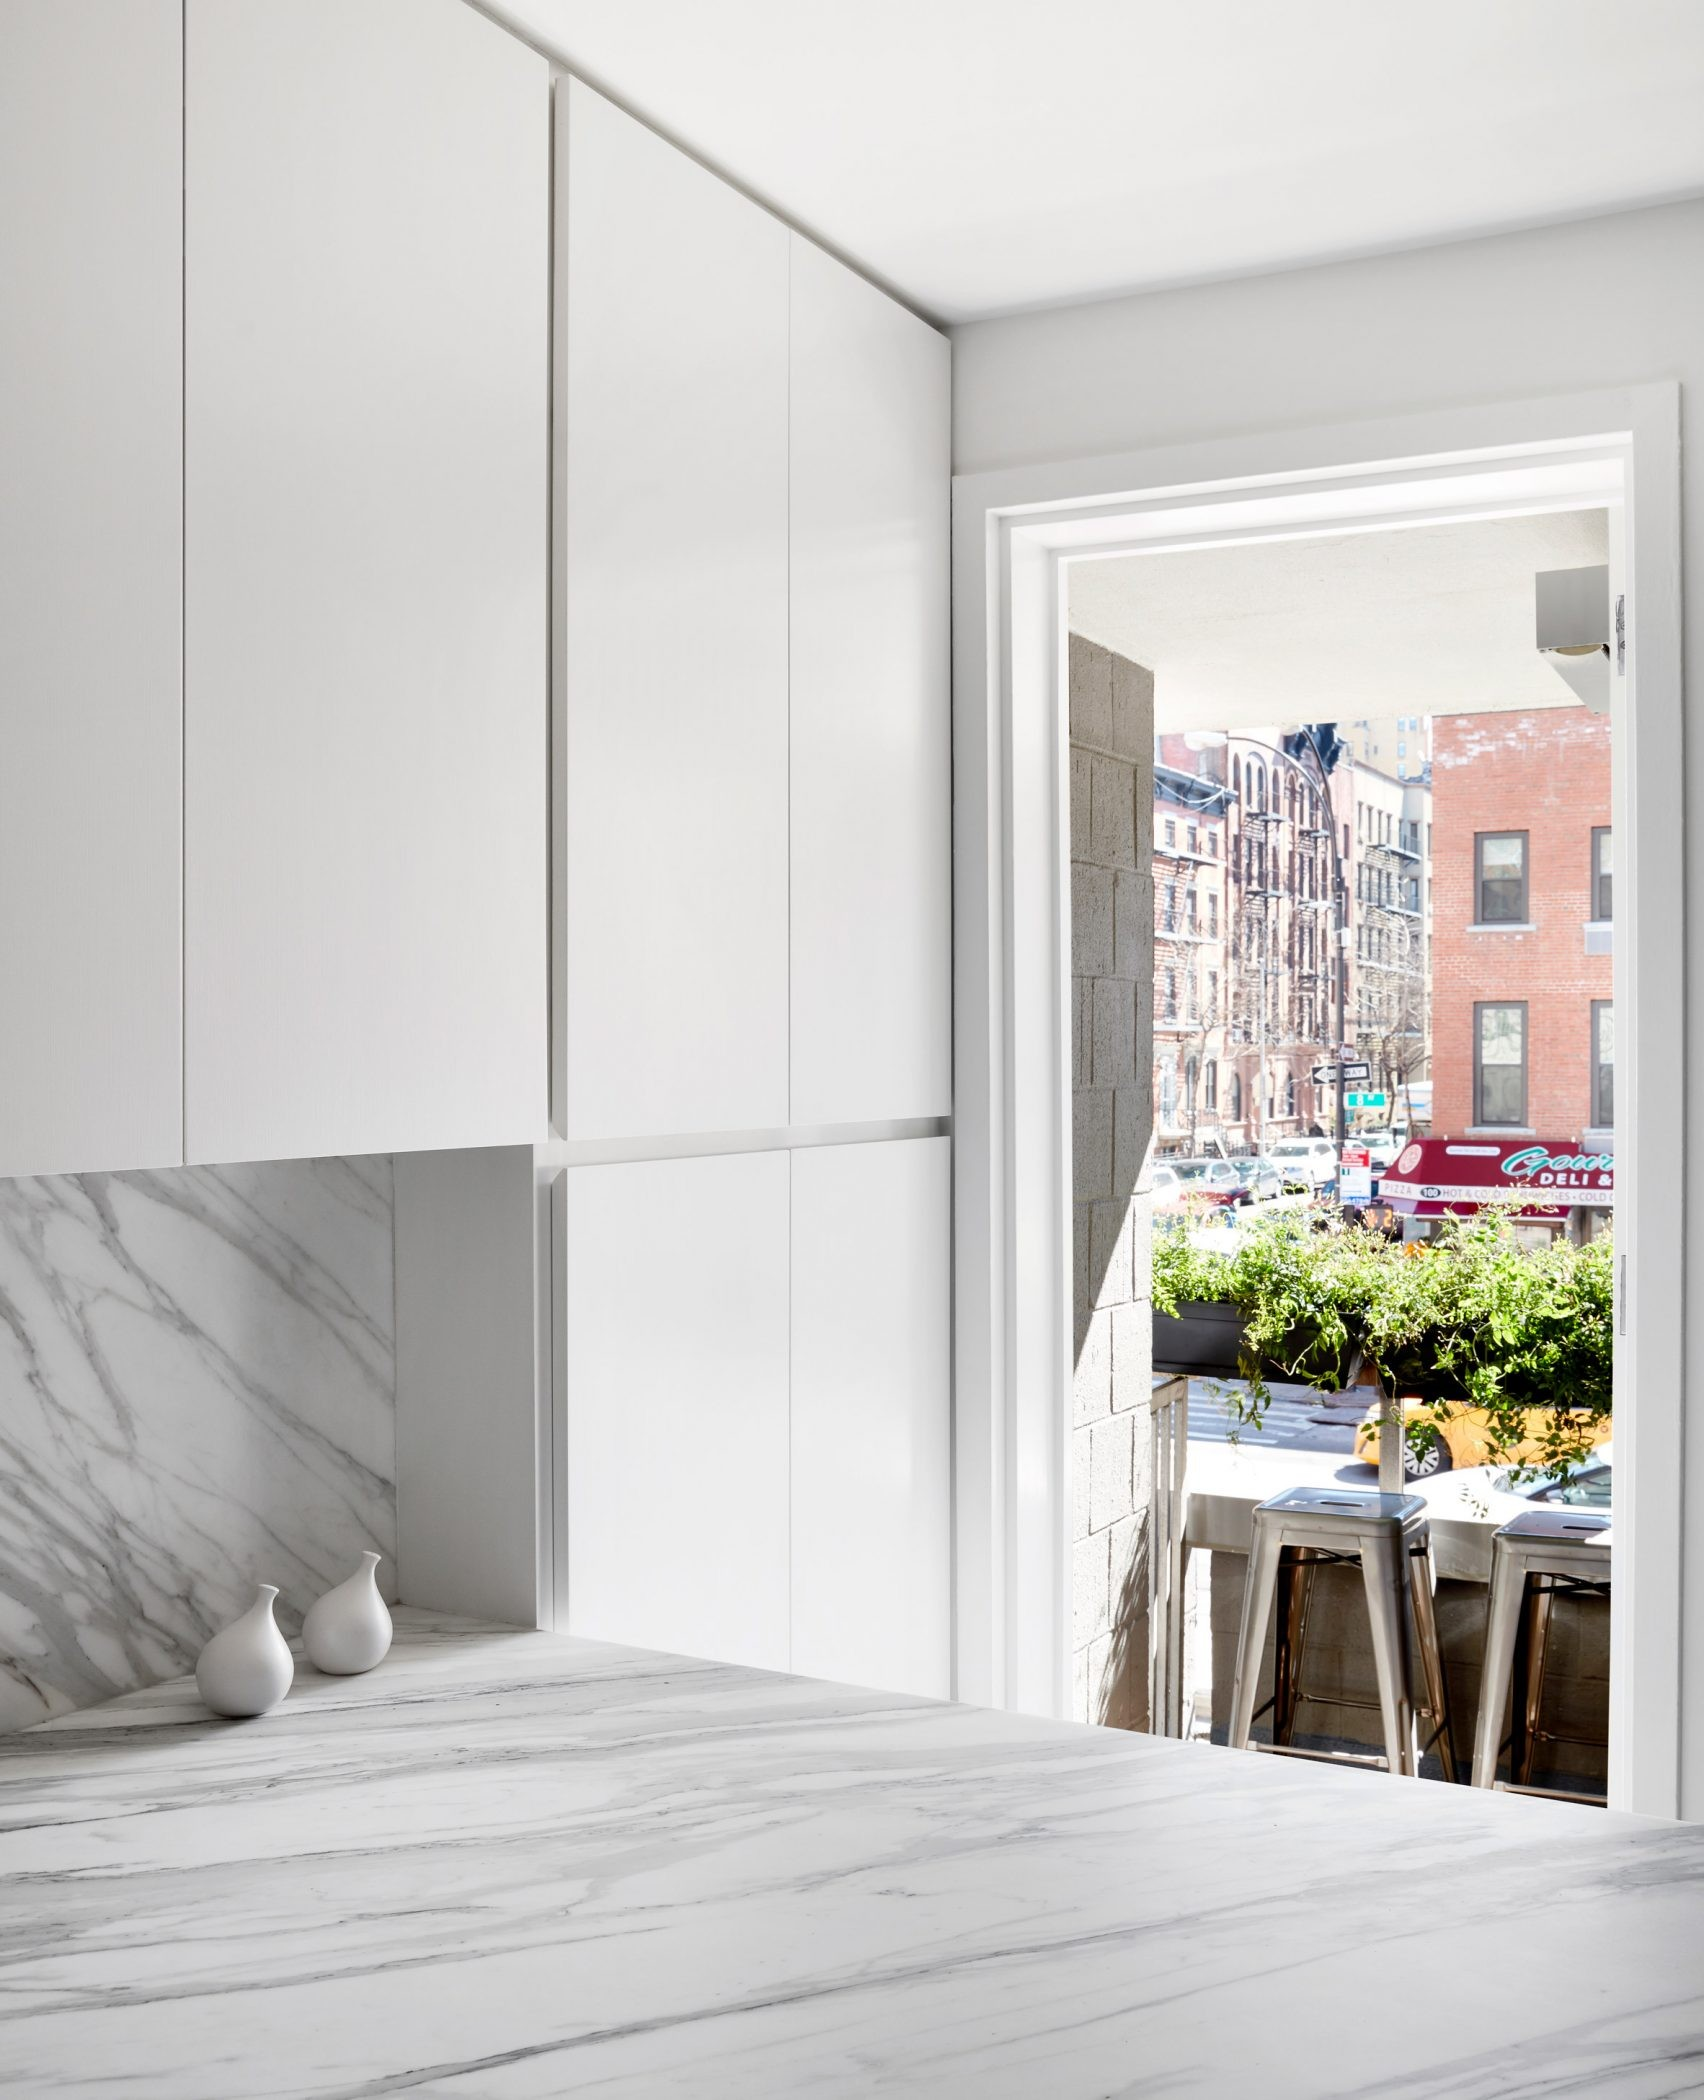 interior design Interior Design Project Brings Nature Inside This New York Apartment green design ideas inspirations8